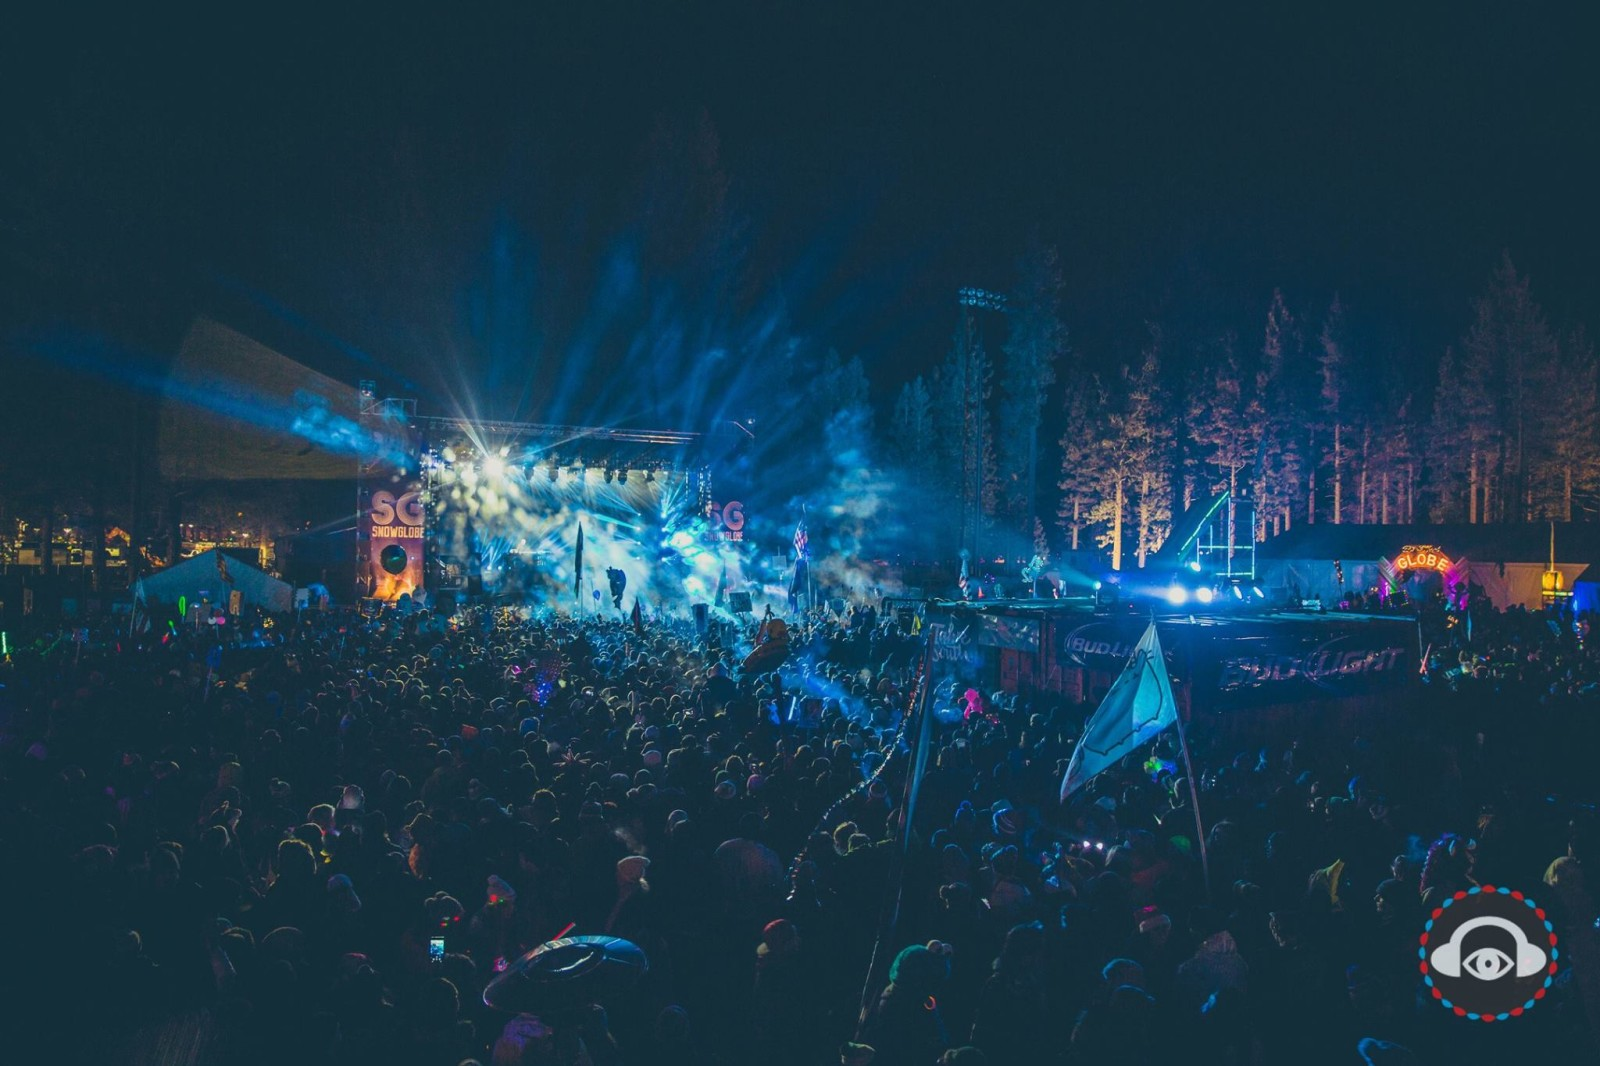 [NEWS] SnowGlobe Music Festival Releases Another Promising Lineup